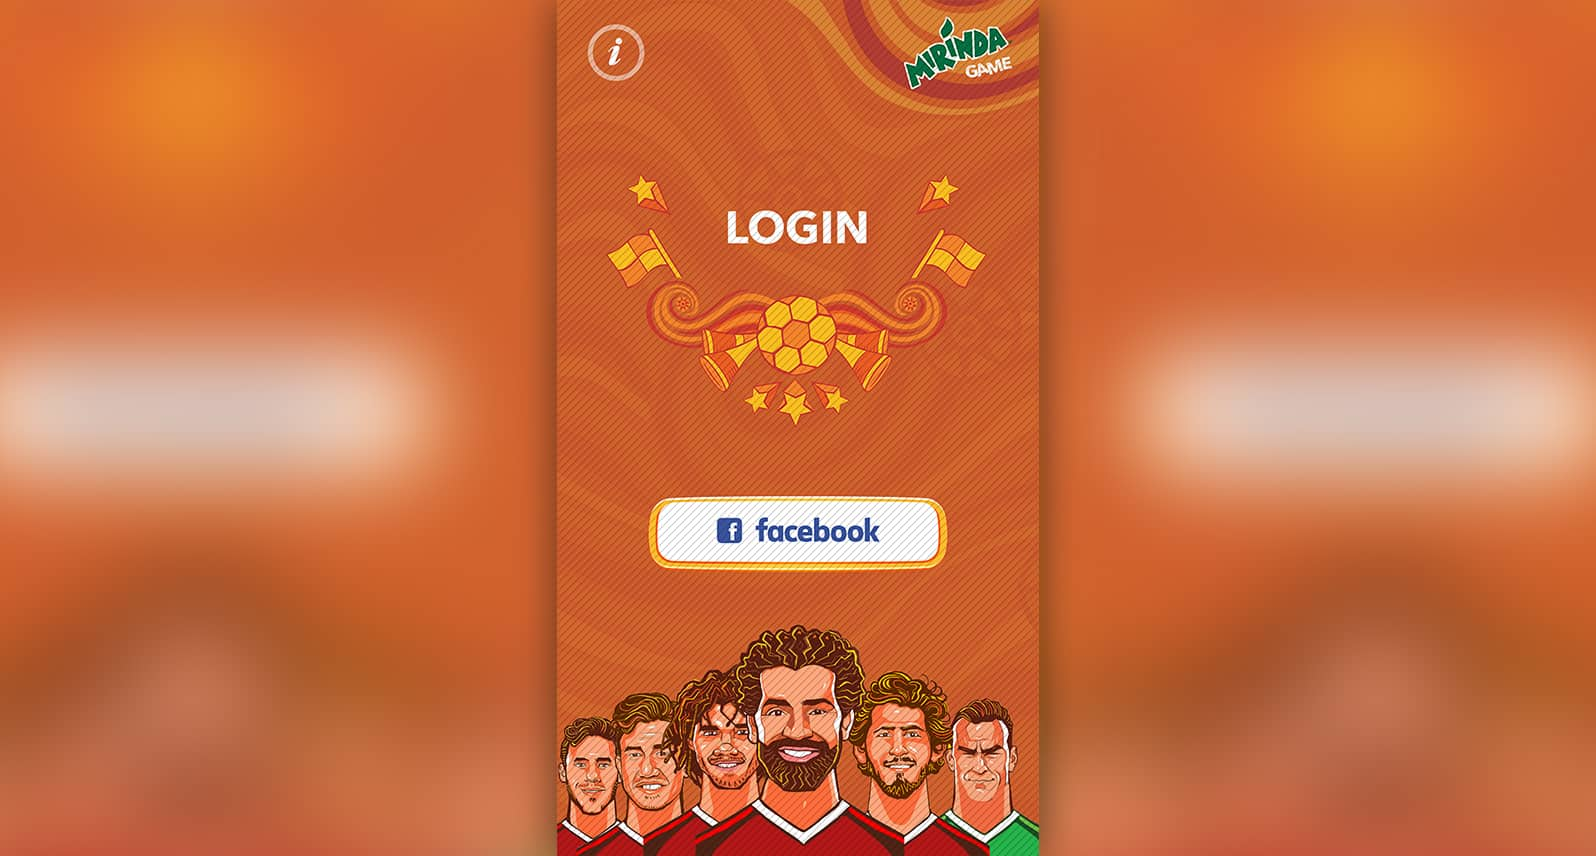 Mirinda AR Game – Egyptian Football Team